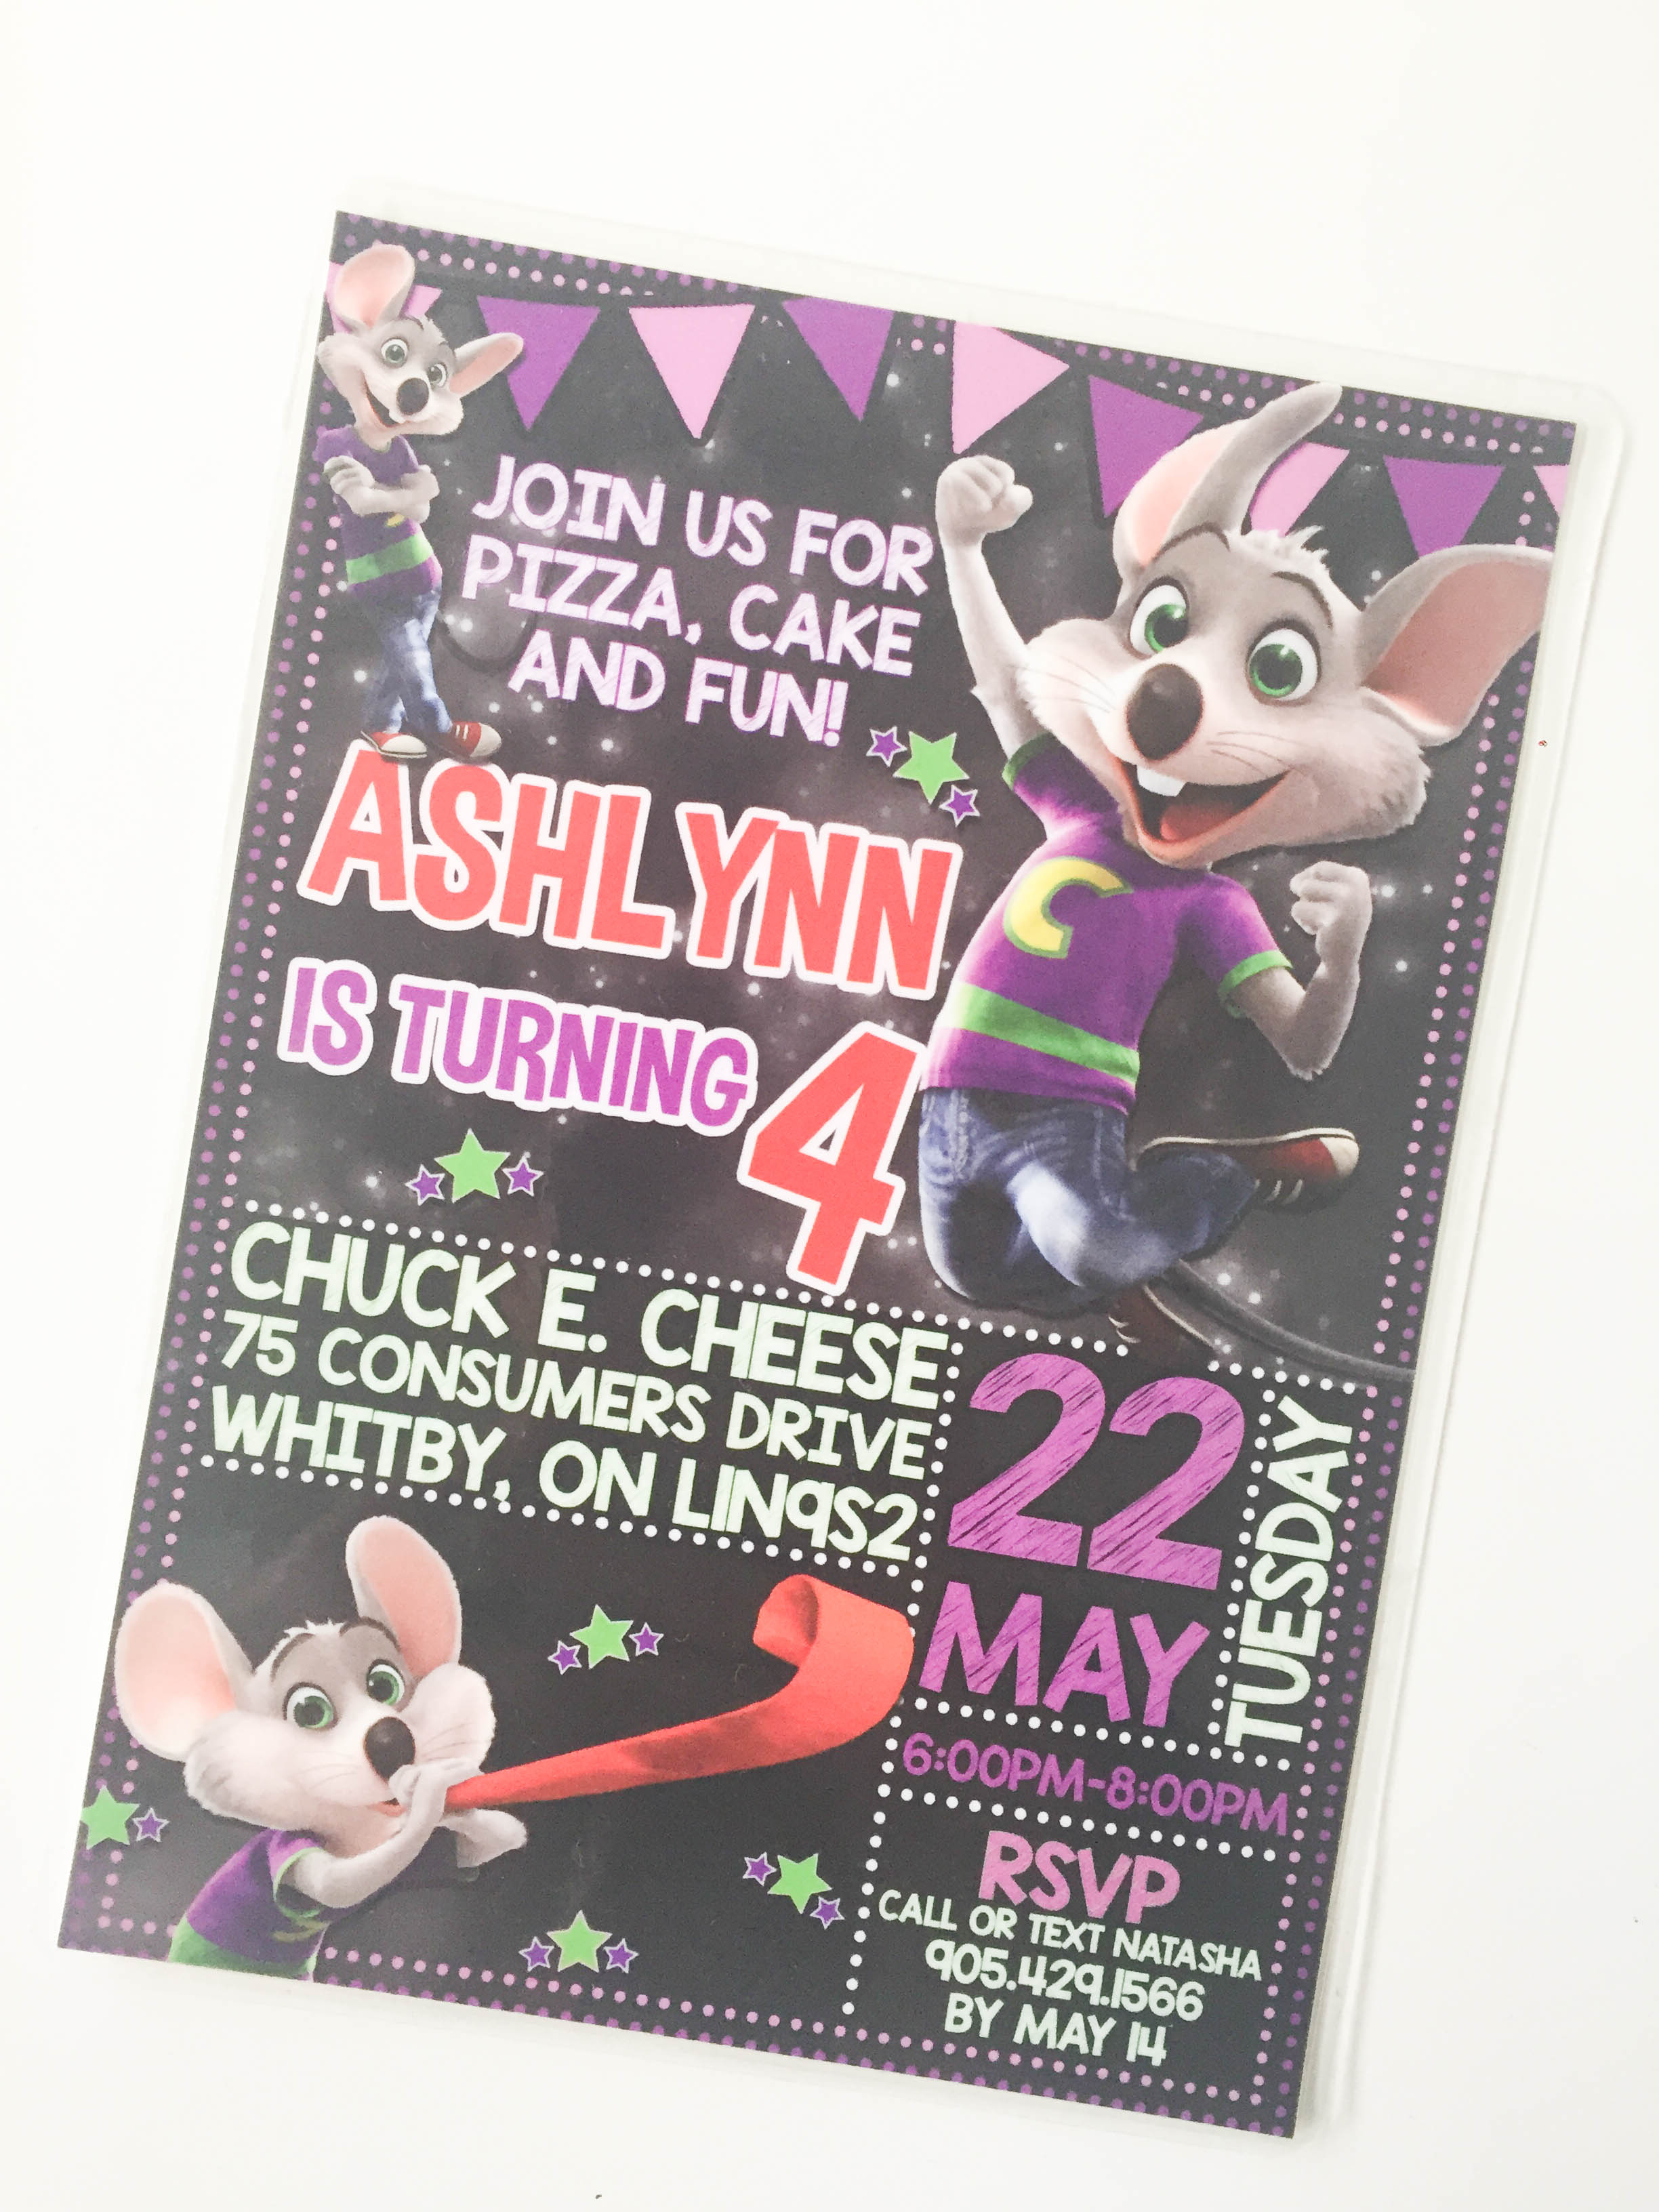 Chuck E. Cheese invite on Livin' Life with Style